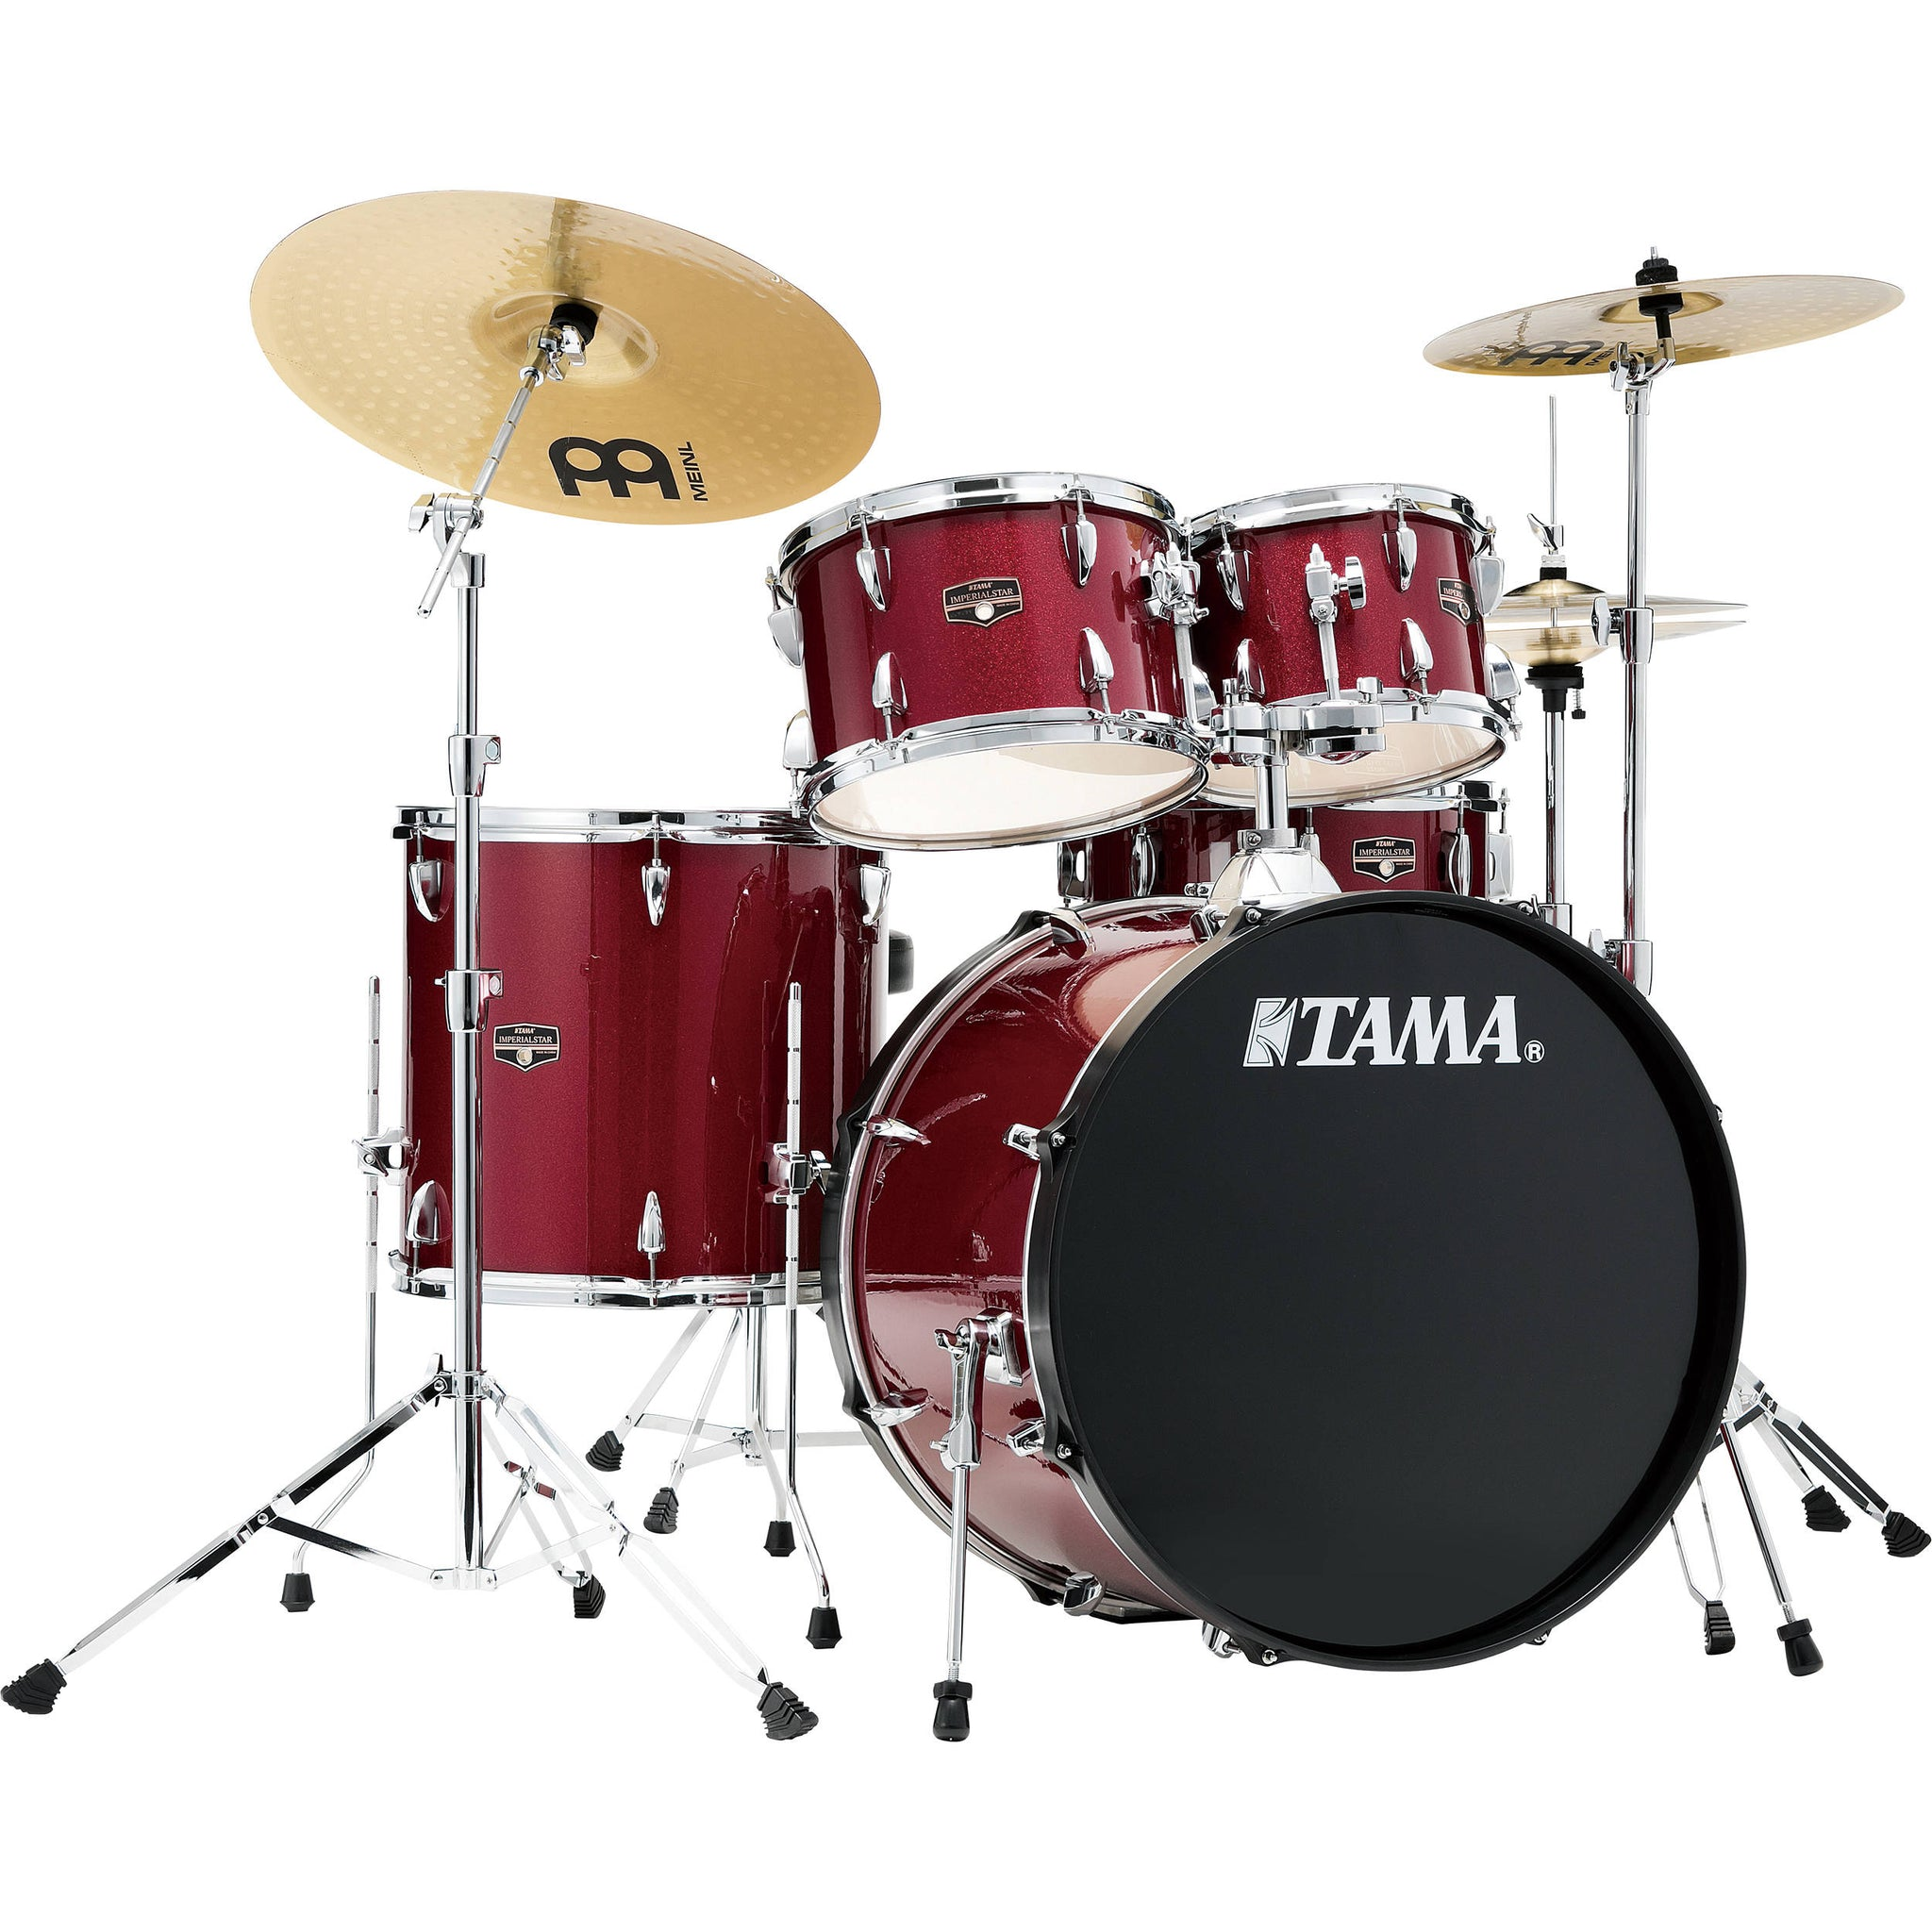 Tama Imperialstar 5-Piece Standard Drum Set Candy Apple Mist | Music Experience | Shop Online | South Africa